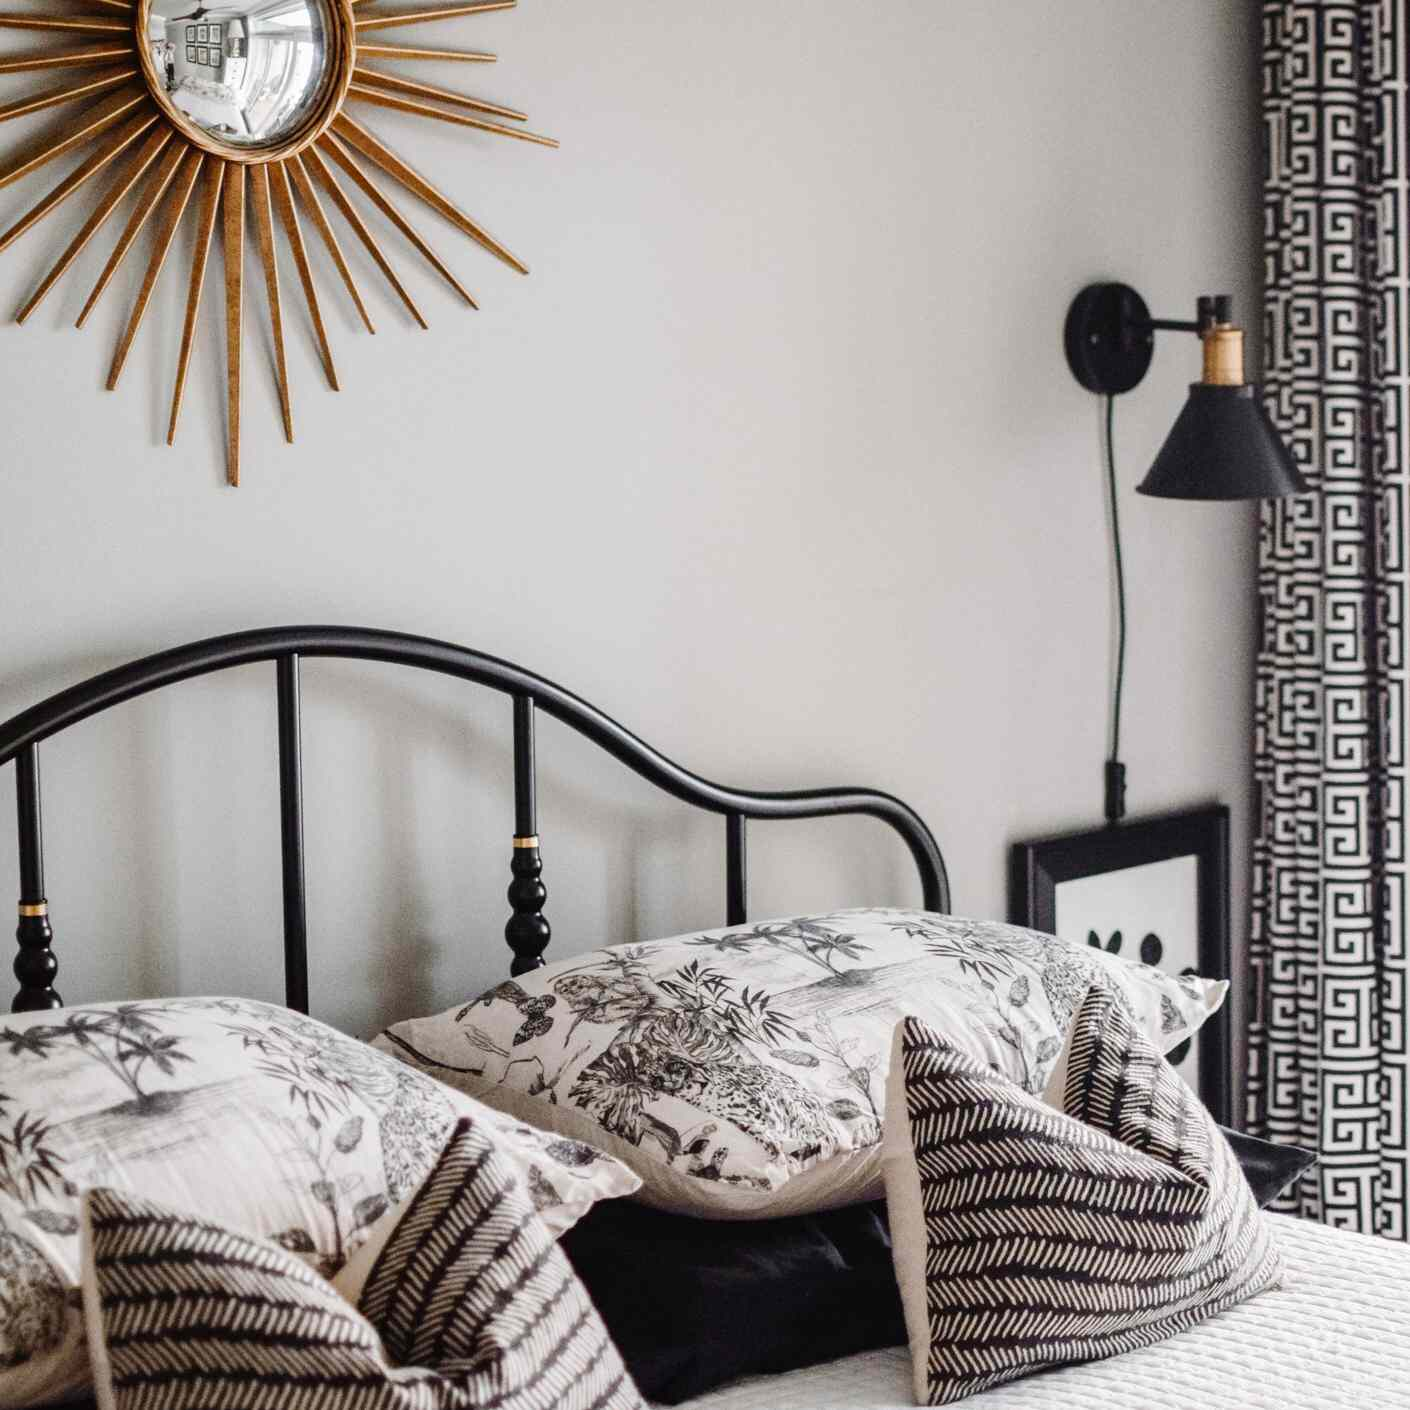 Black and white bed with large sun mirror hanging above it.